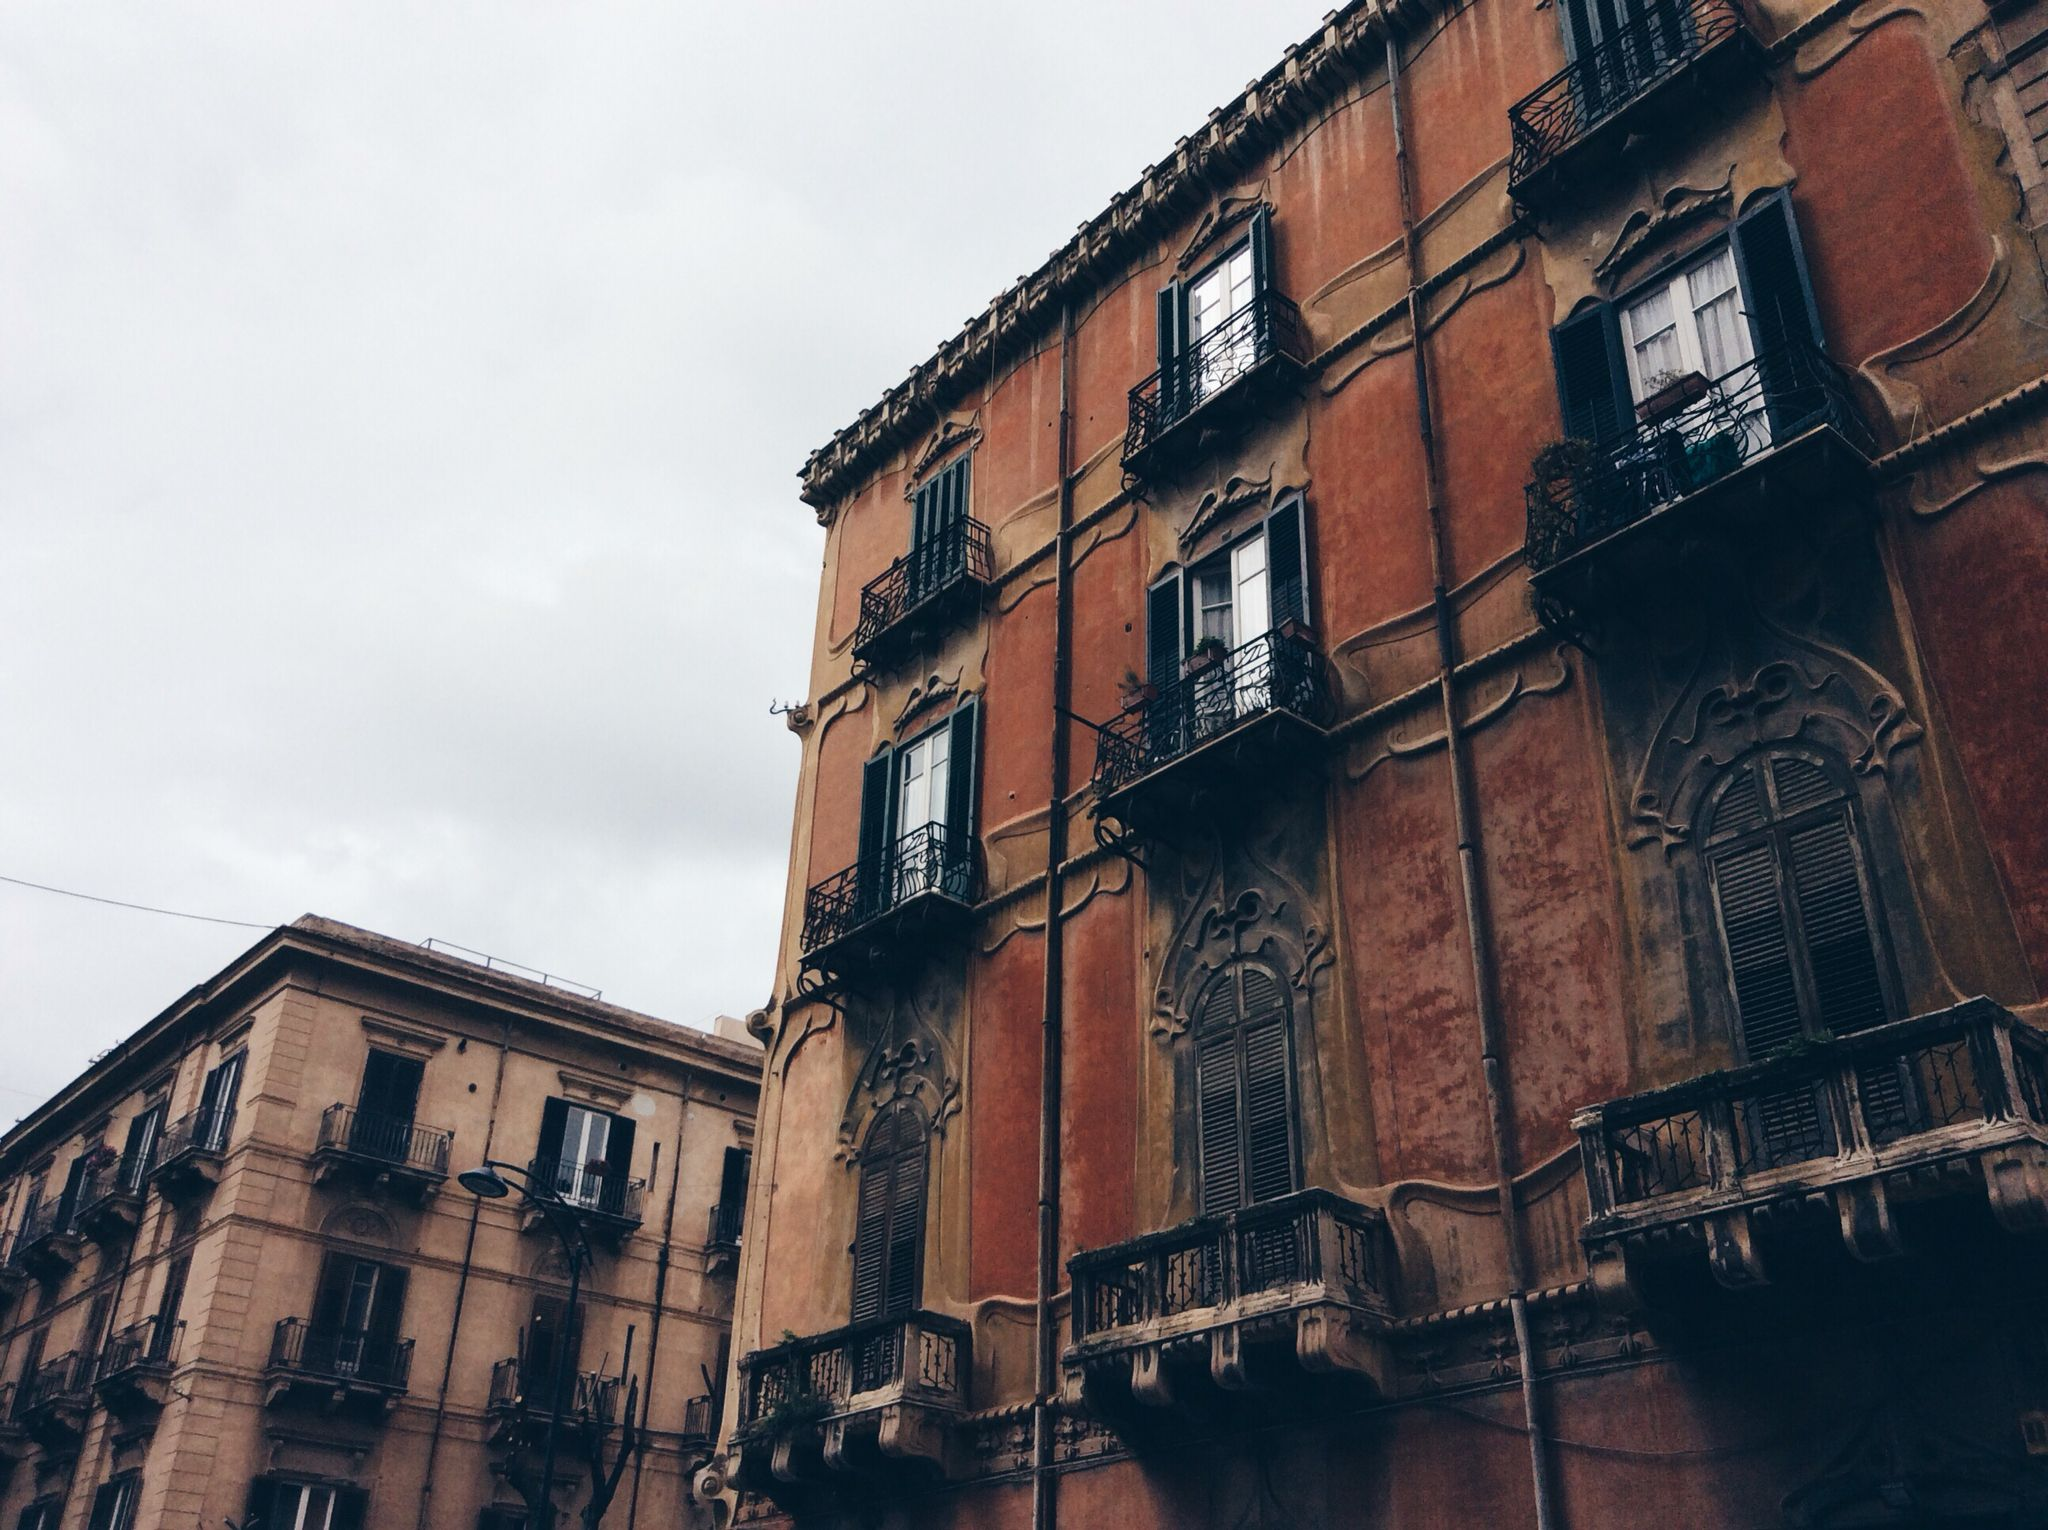 Palermo and its amazing buildings | #Palermo #architecture #artnouveau